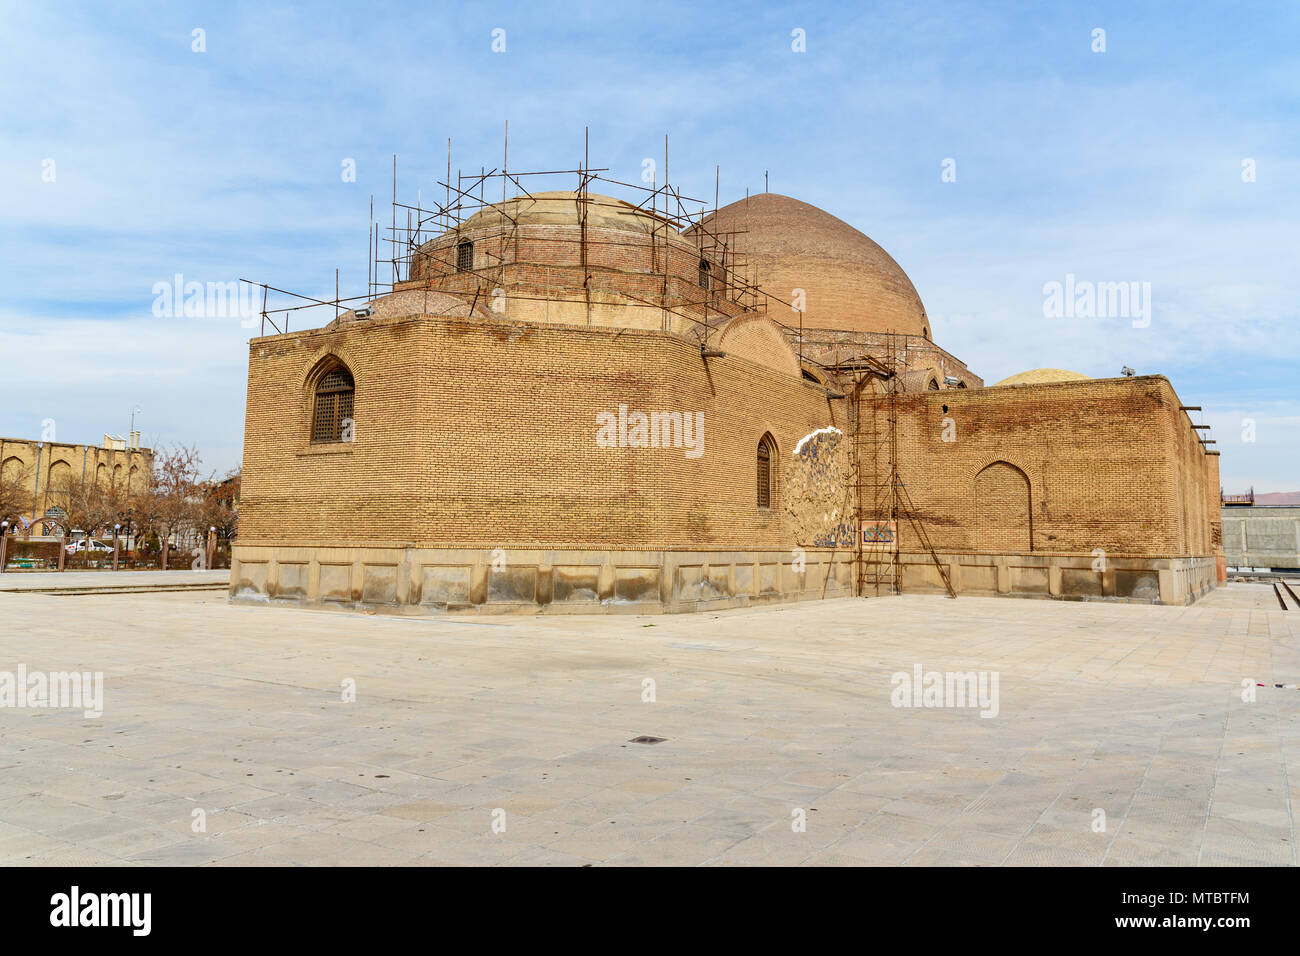 View of Blue Mosque. The mosque were constructed in 1465. Tabriz. East Azerbaijan province. Iran - Stock Image